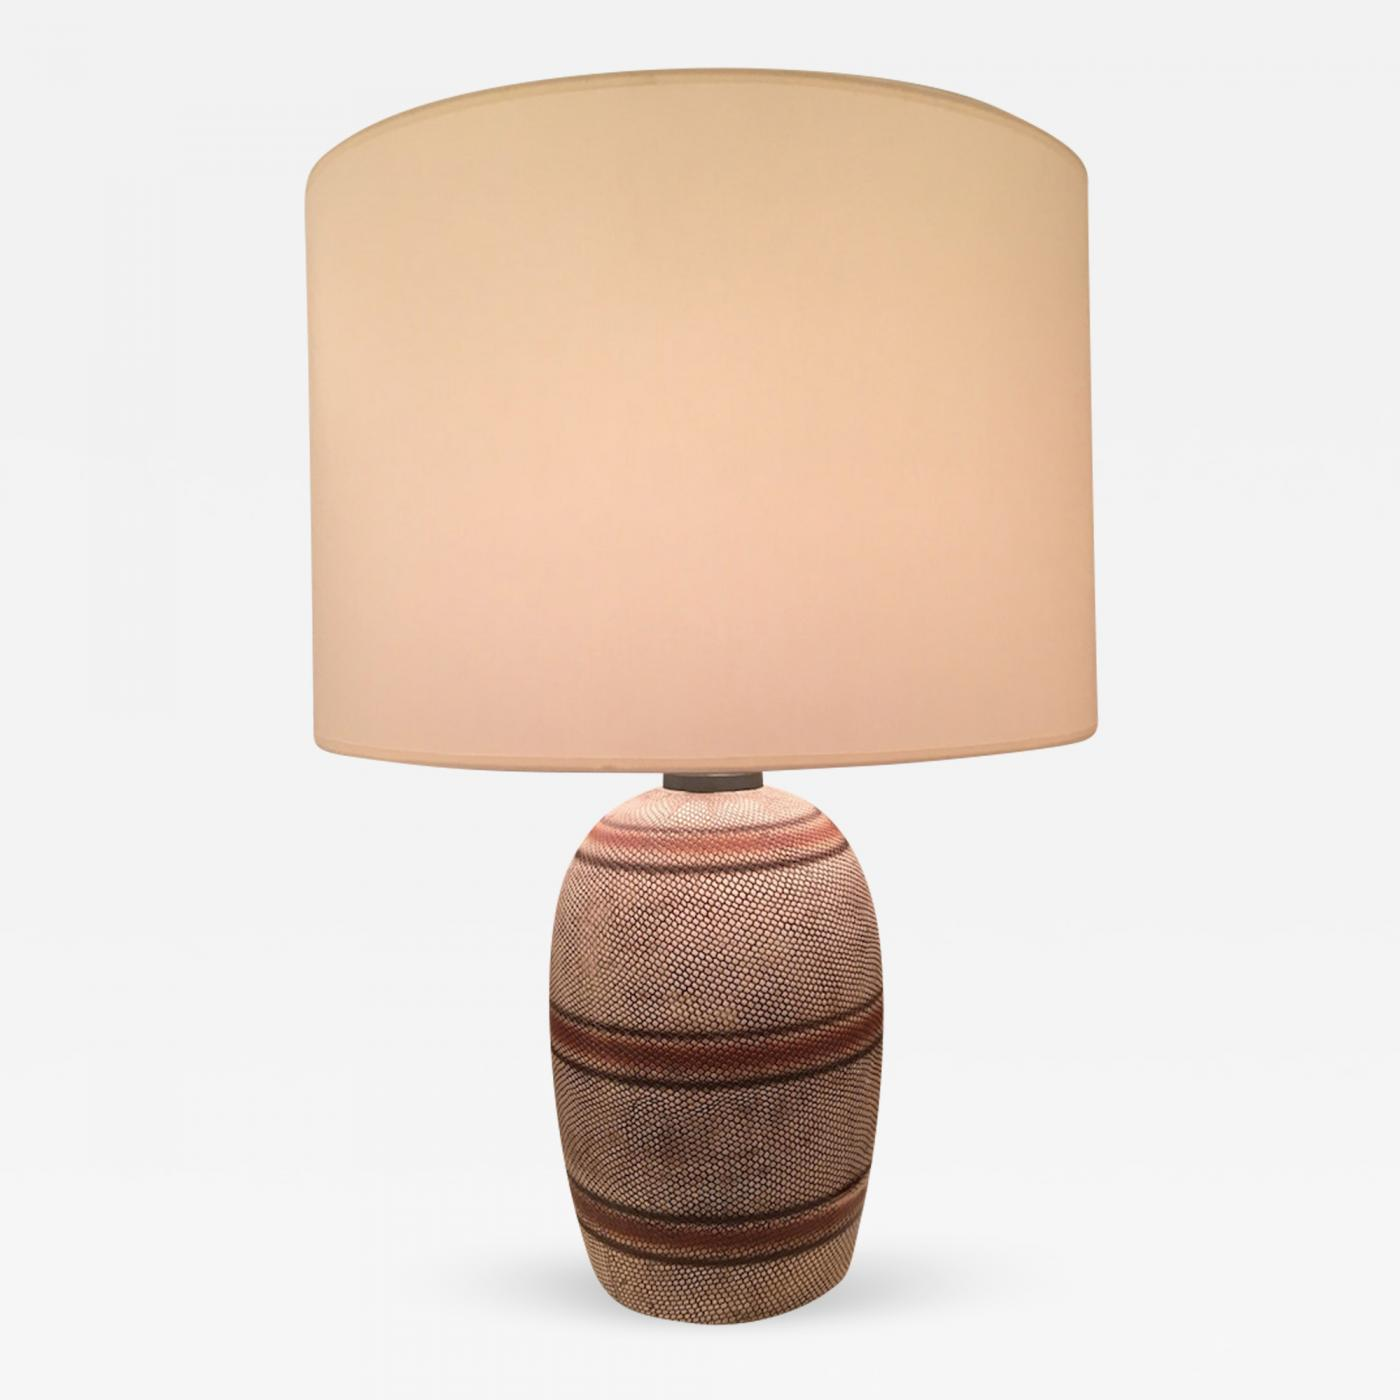 Picture of: Georges Jouve French Ceramic Mid Century Table Lamp